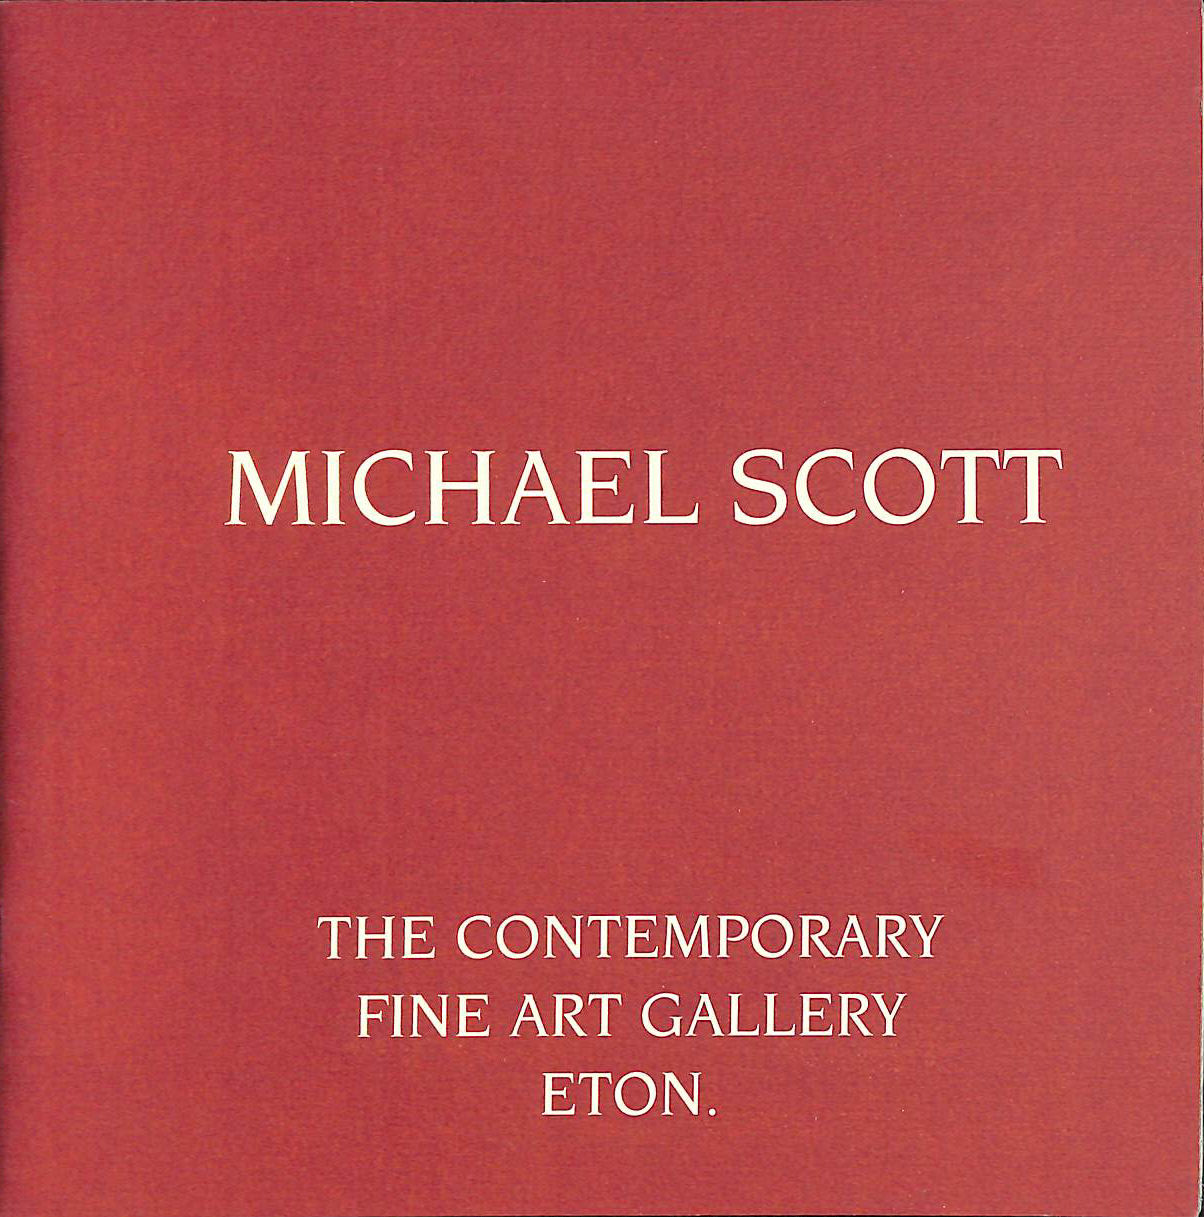 Image for Michael Scott an Exhibition of Recent Works